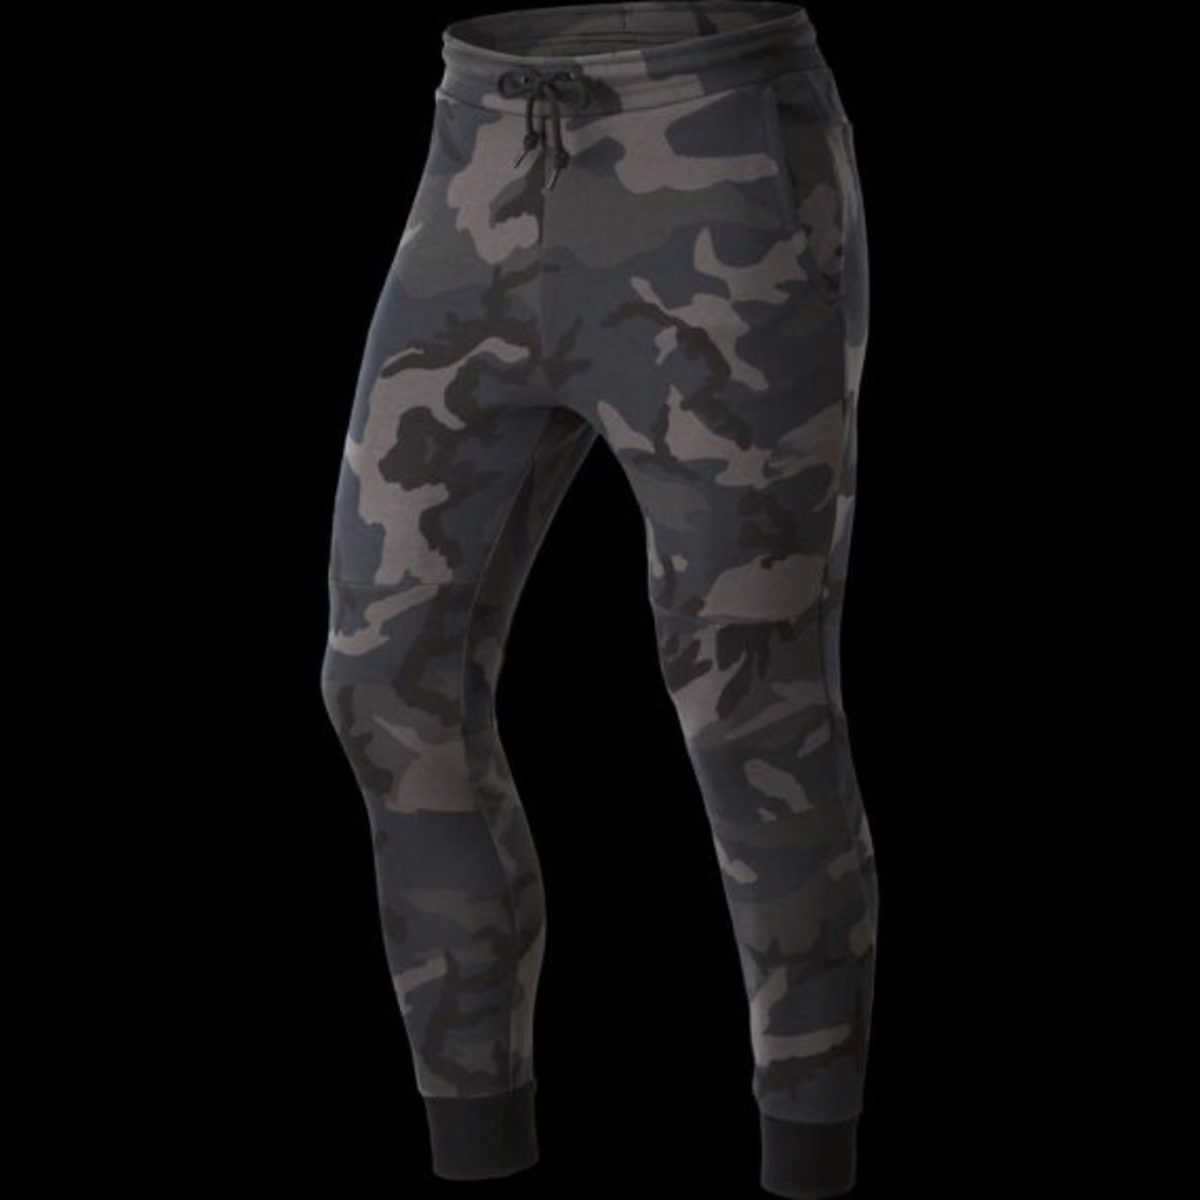 nike-tech-fleece-pants-camo-02